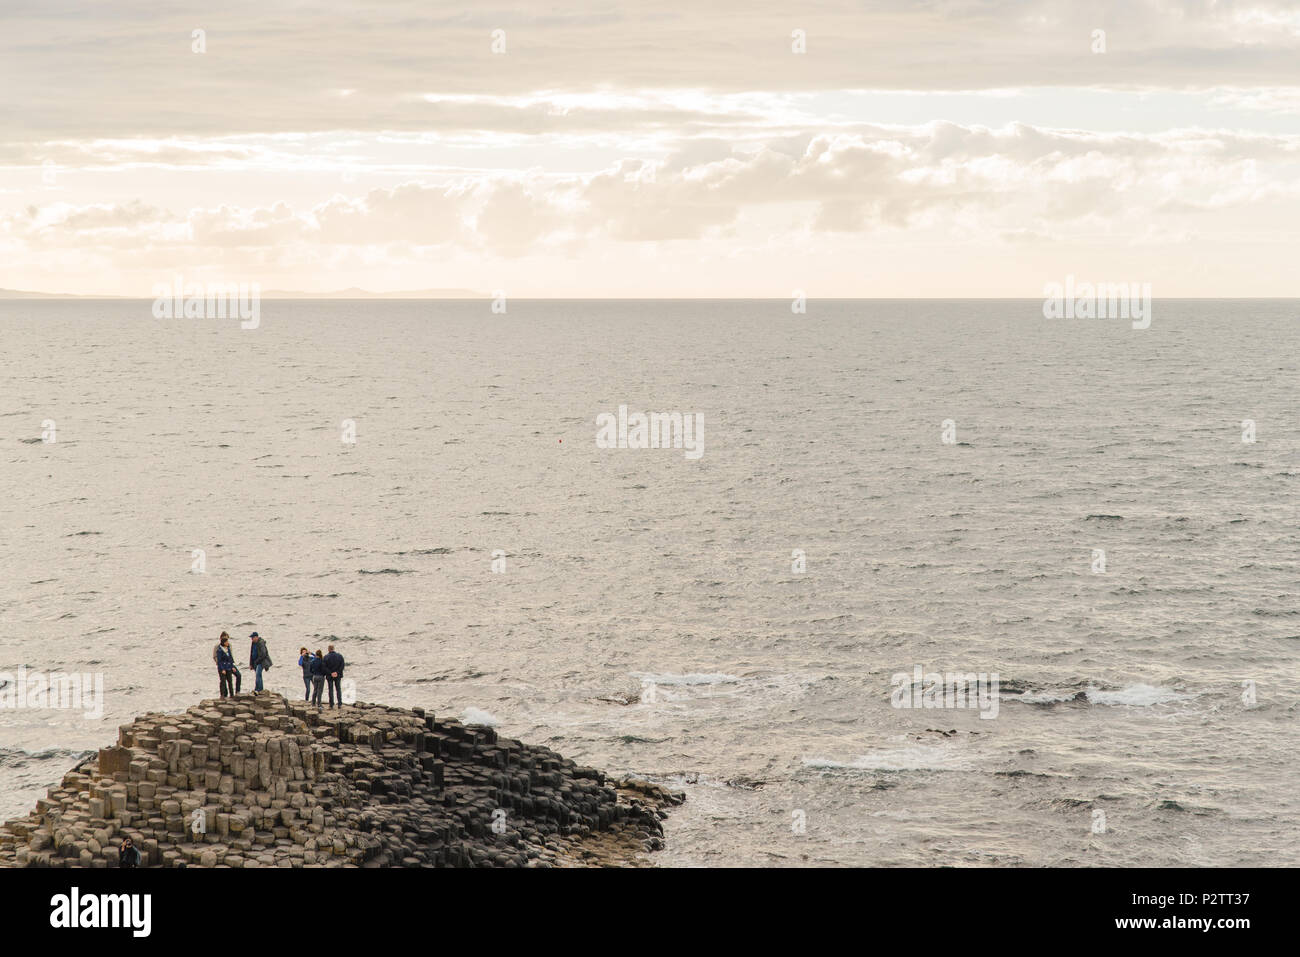 People standing on the rocks next to the ocean at Giant's Causeway in Northern Ireland. - Stock Image